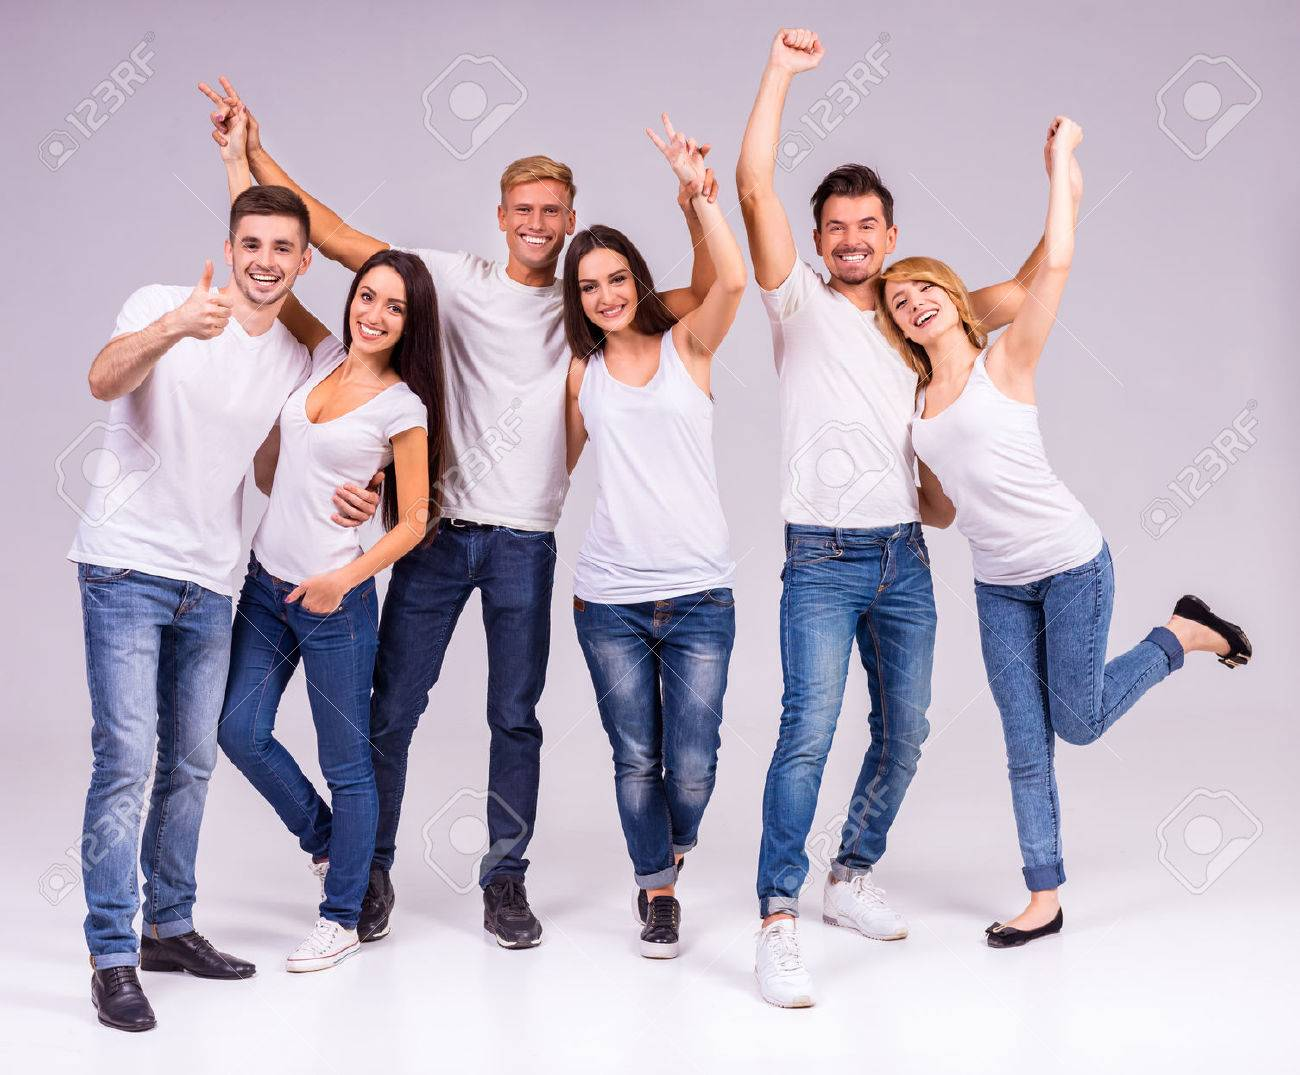 A group of young people smiling on a gray background. Studio shooting Standard-Bild - 46490775